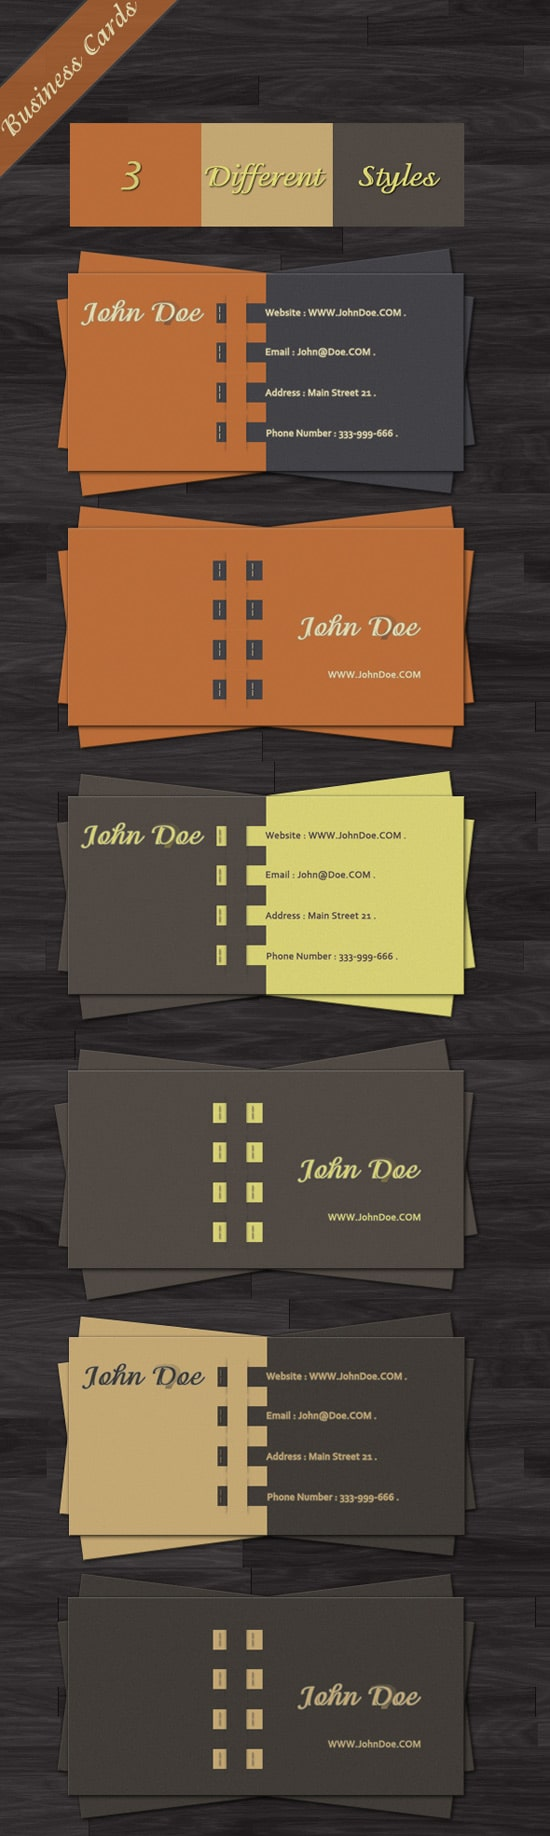 100 free business card templates designrfix business is business free psd vector business card fbccfo Choice Image